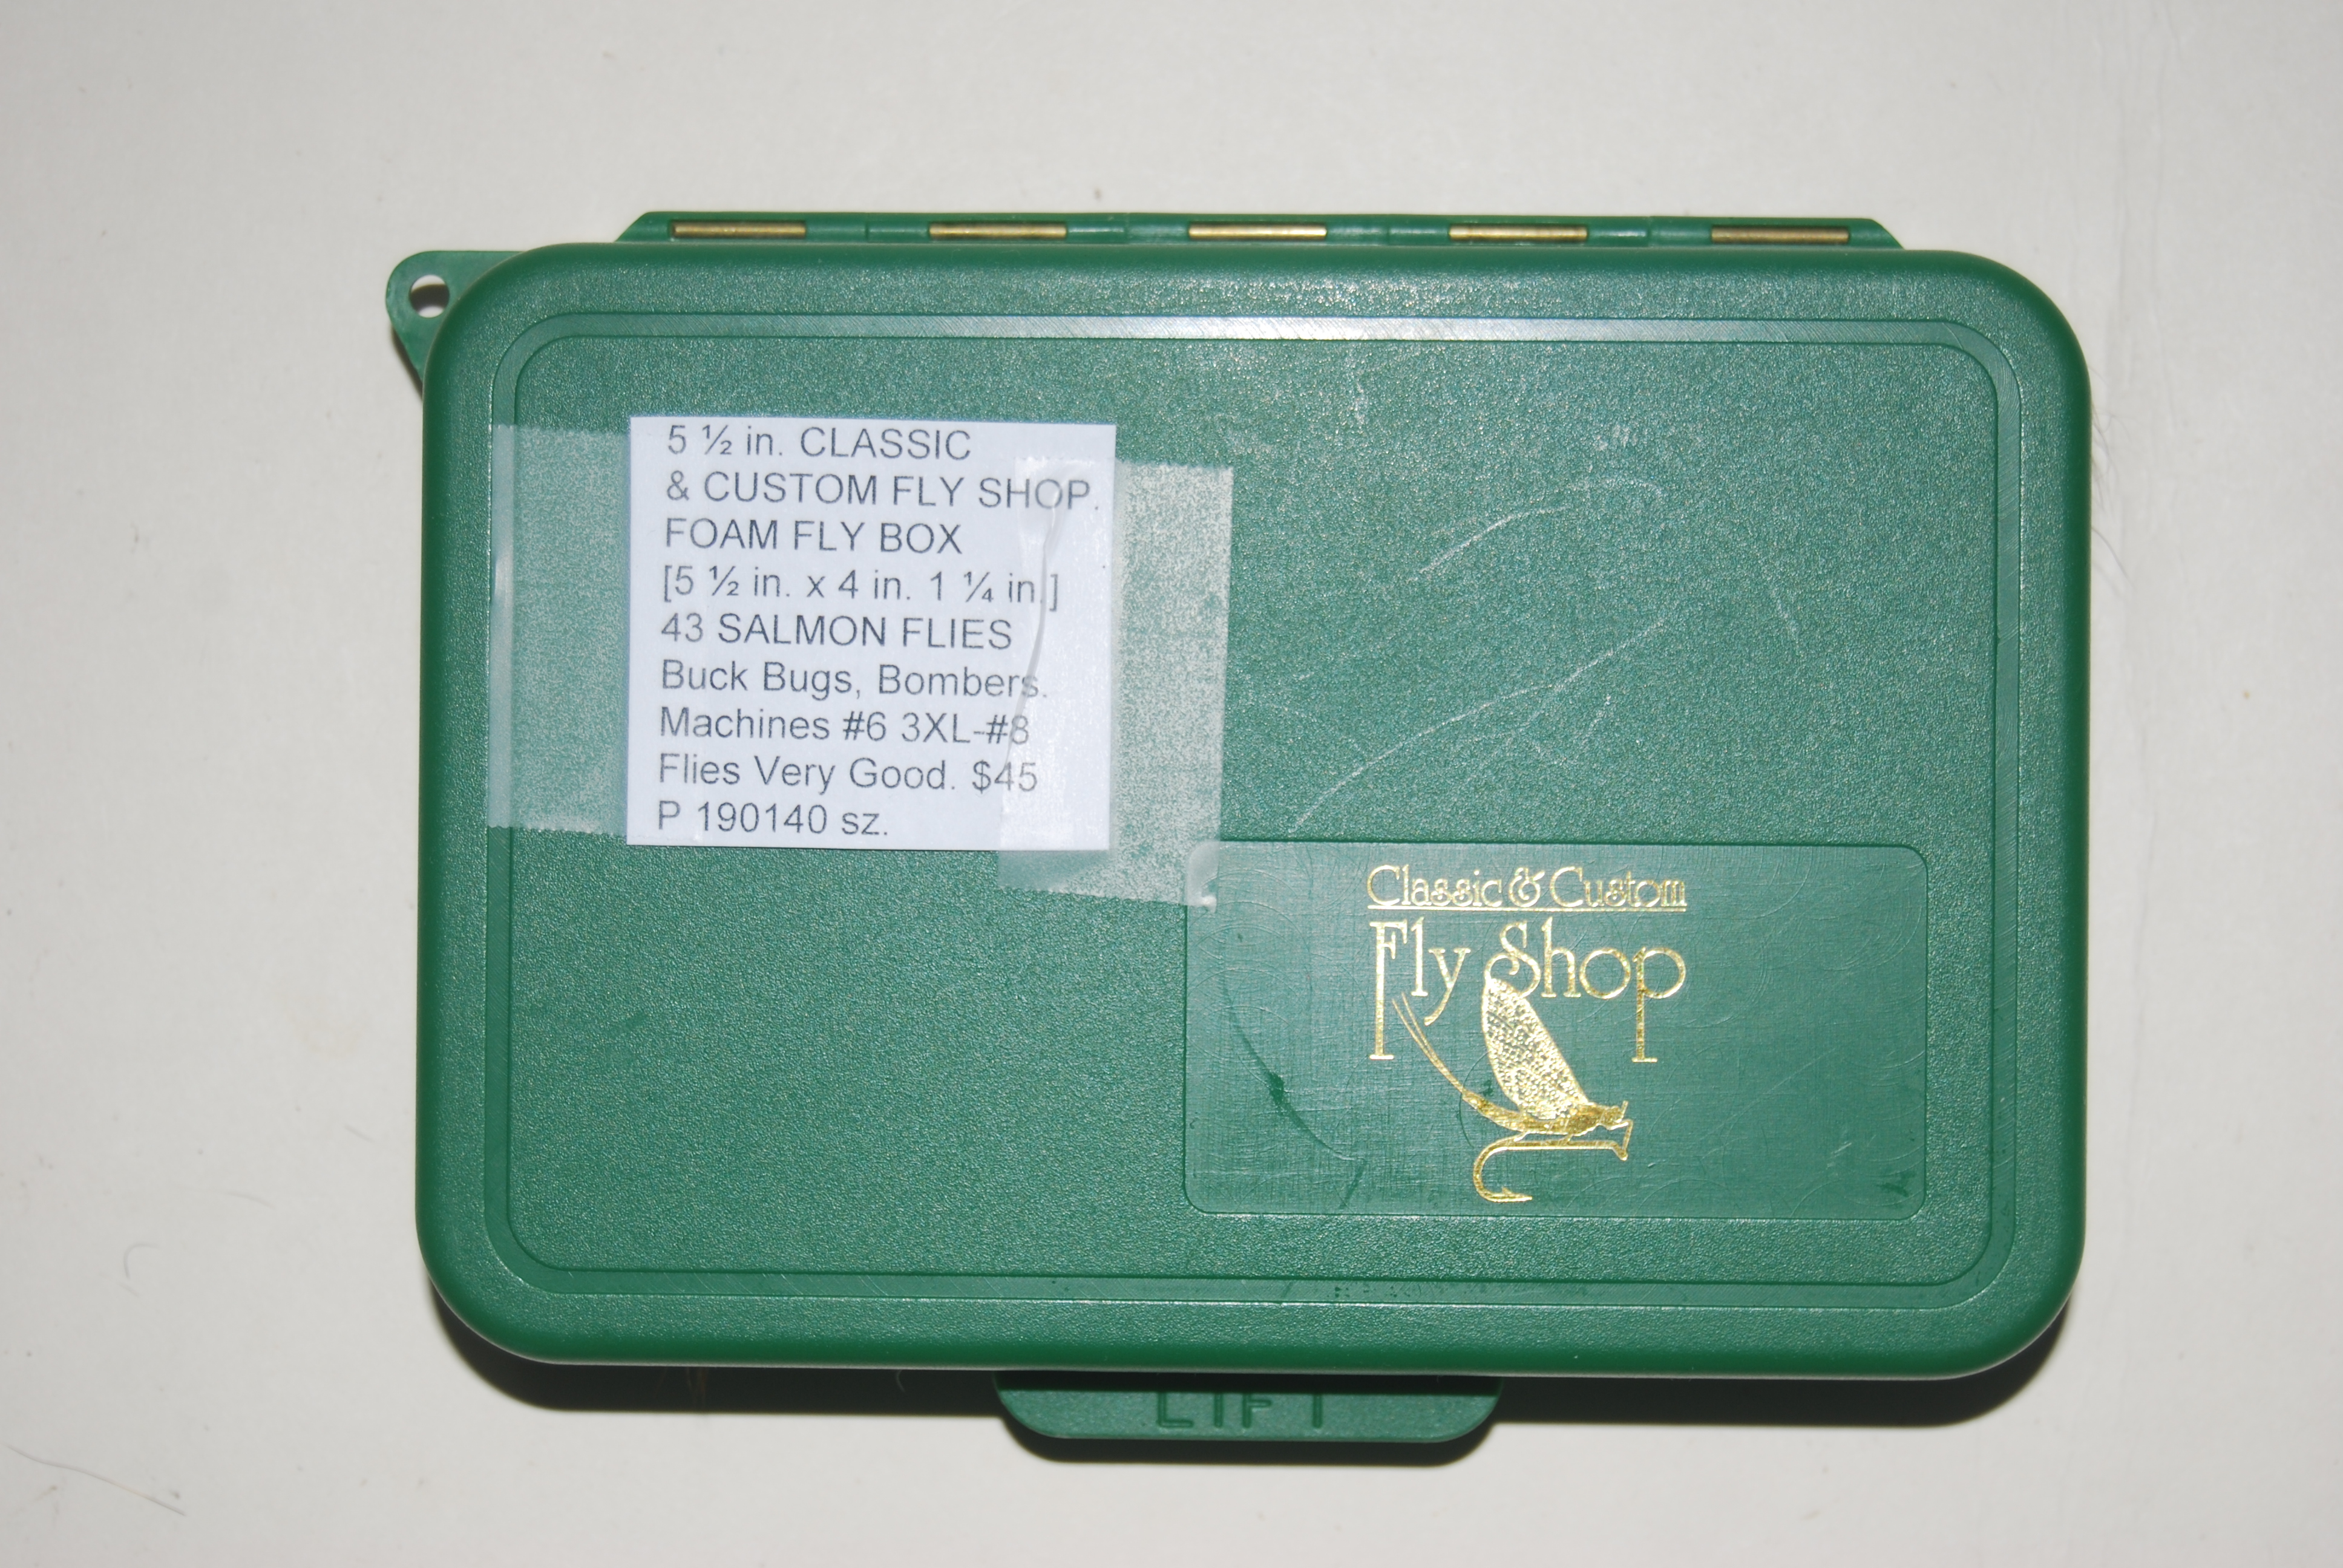 Image for 5 ½ in. CLASSIC & CUSTOM FLY SHOP.  FOAM FLY BOX  [5 ½ in. x 4 in. 1 ¼ in.] + 43 SALMON FLIES.